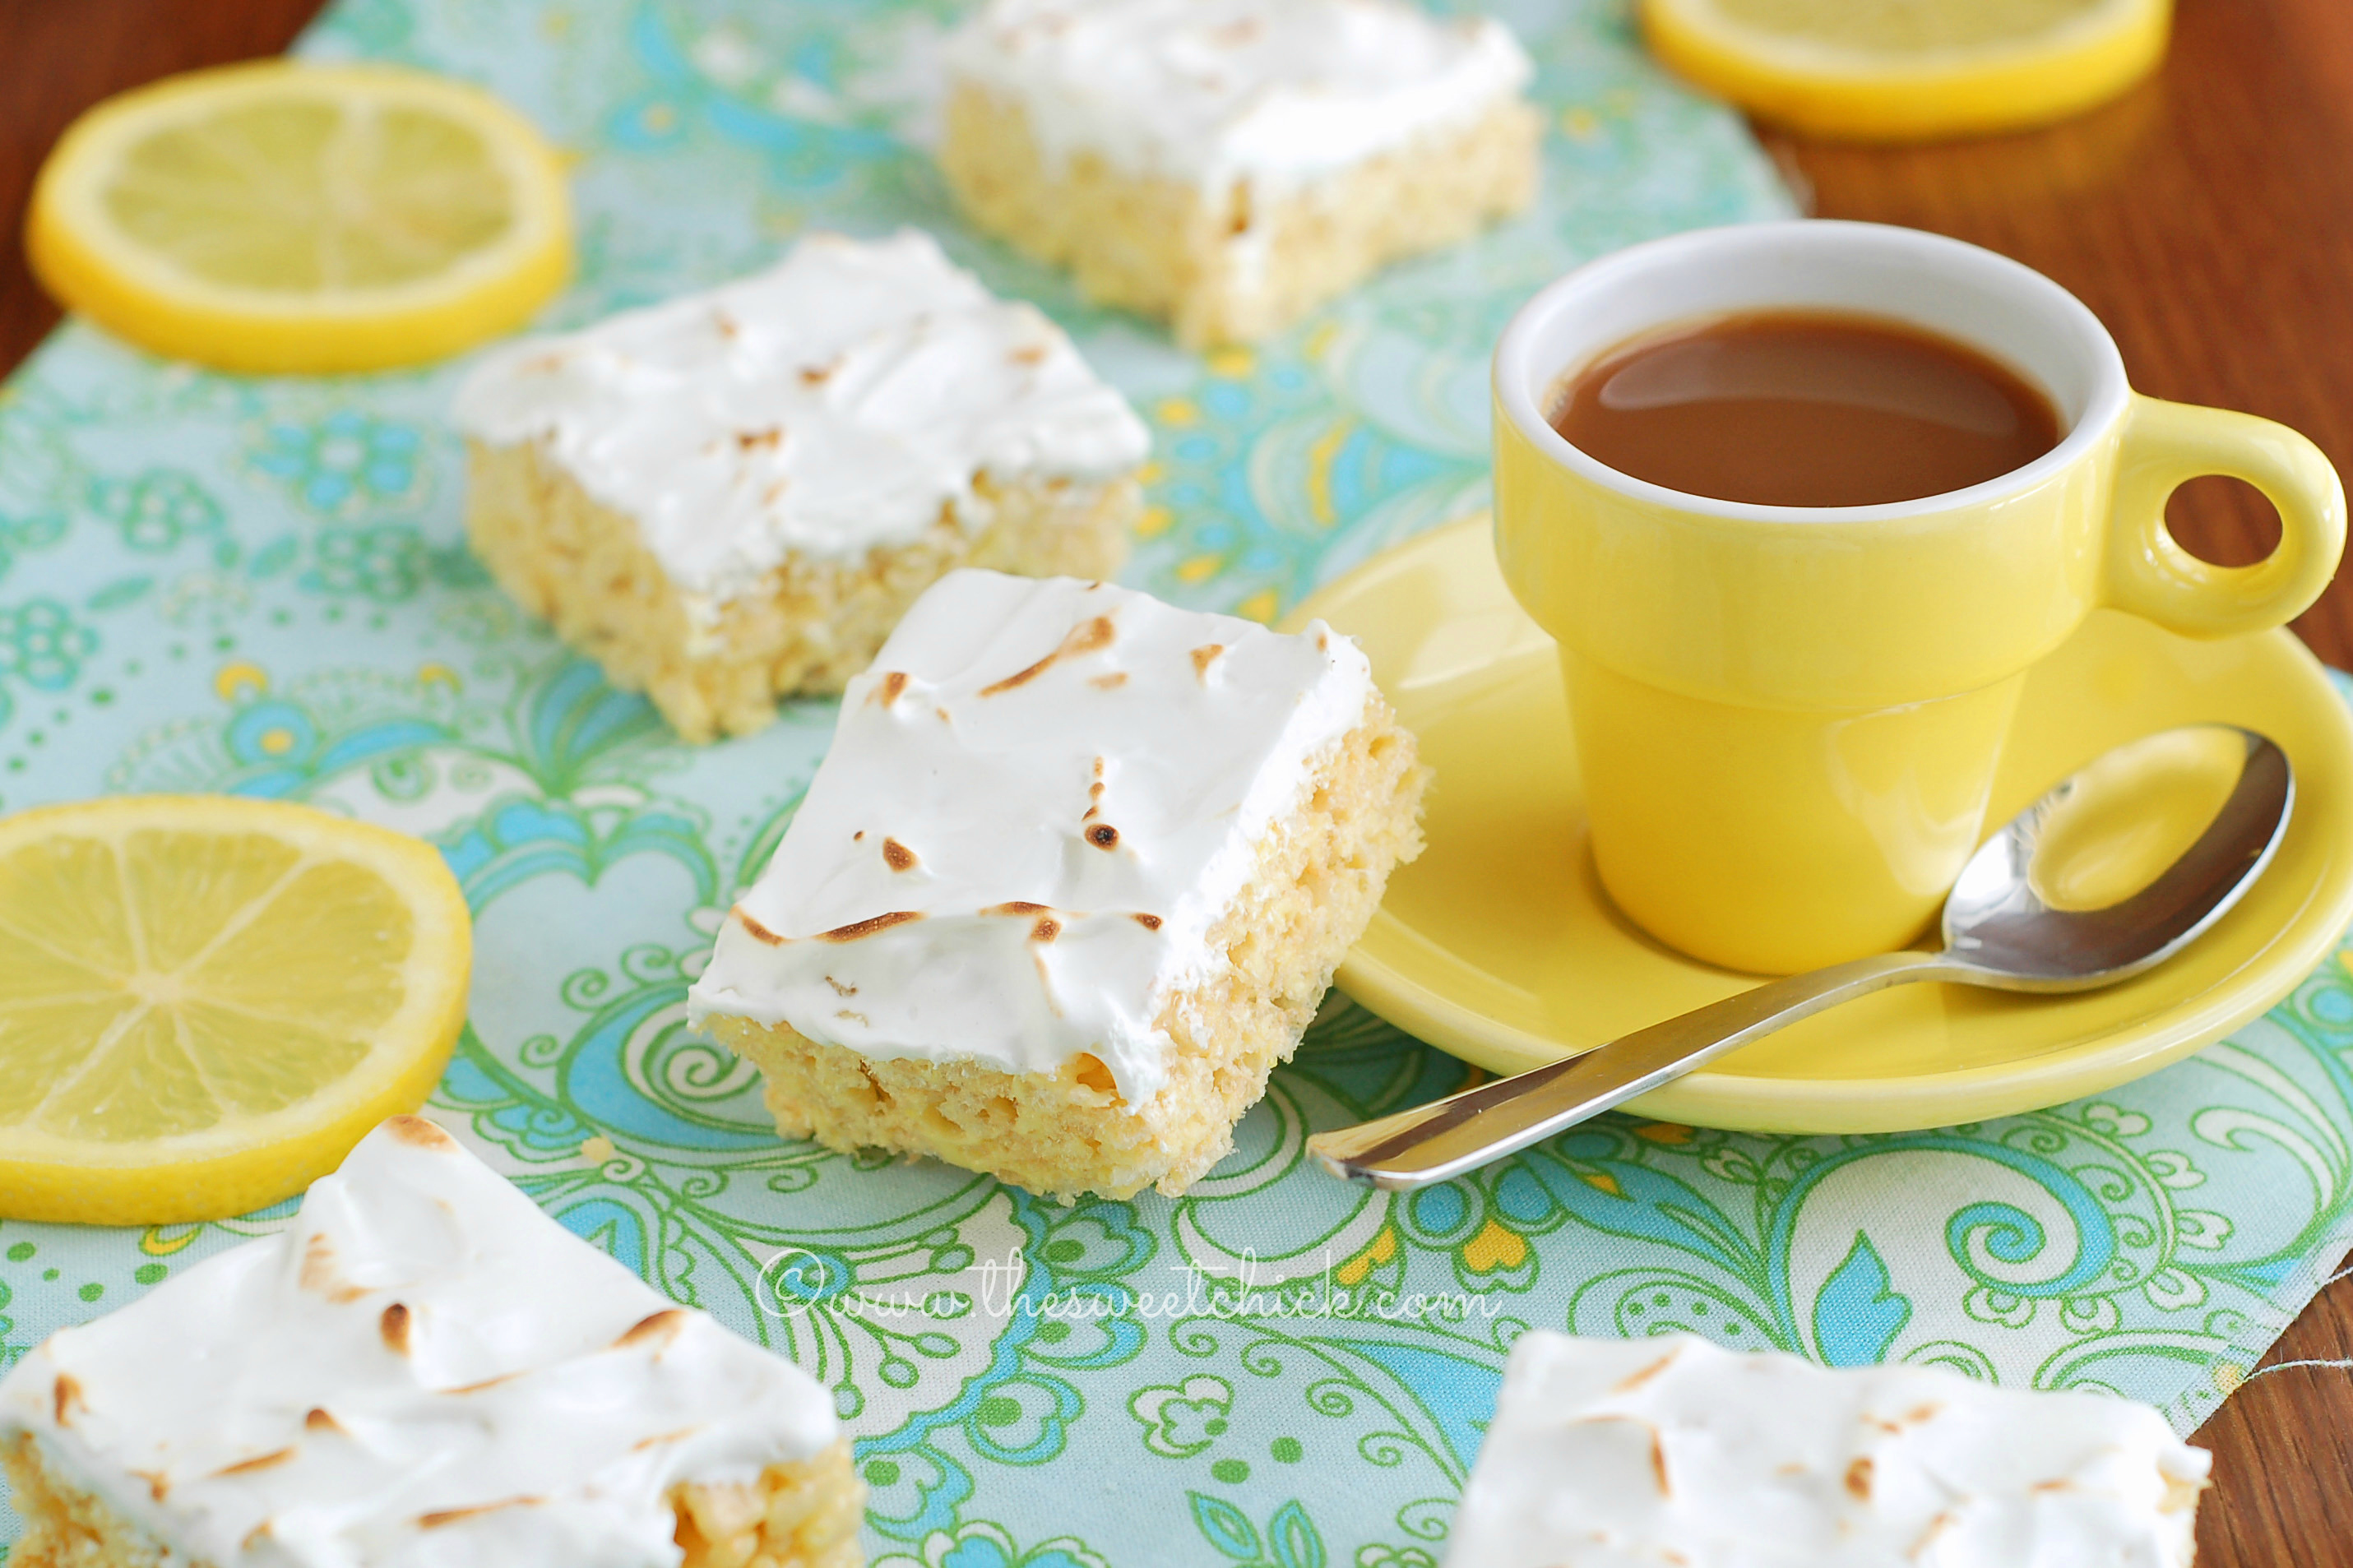 Lemon Meringue Rice Krispies Treats